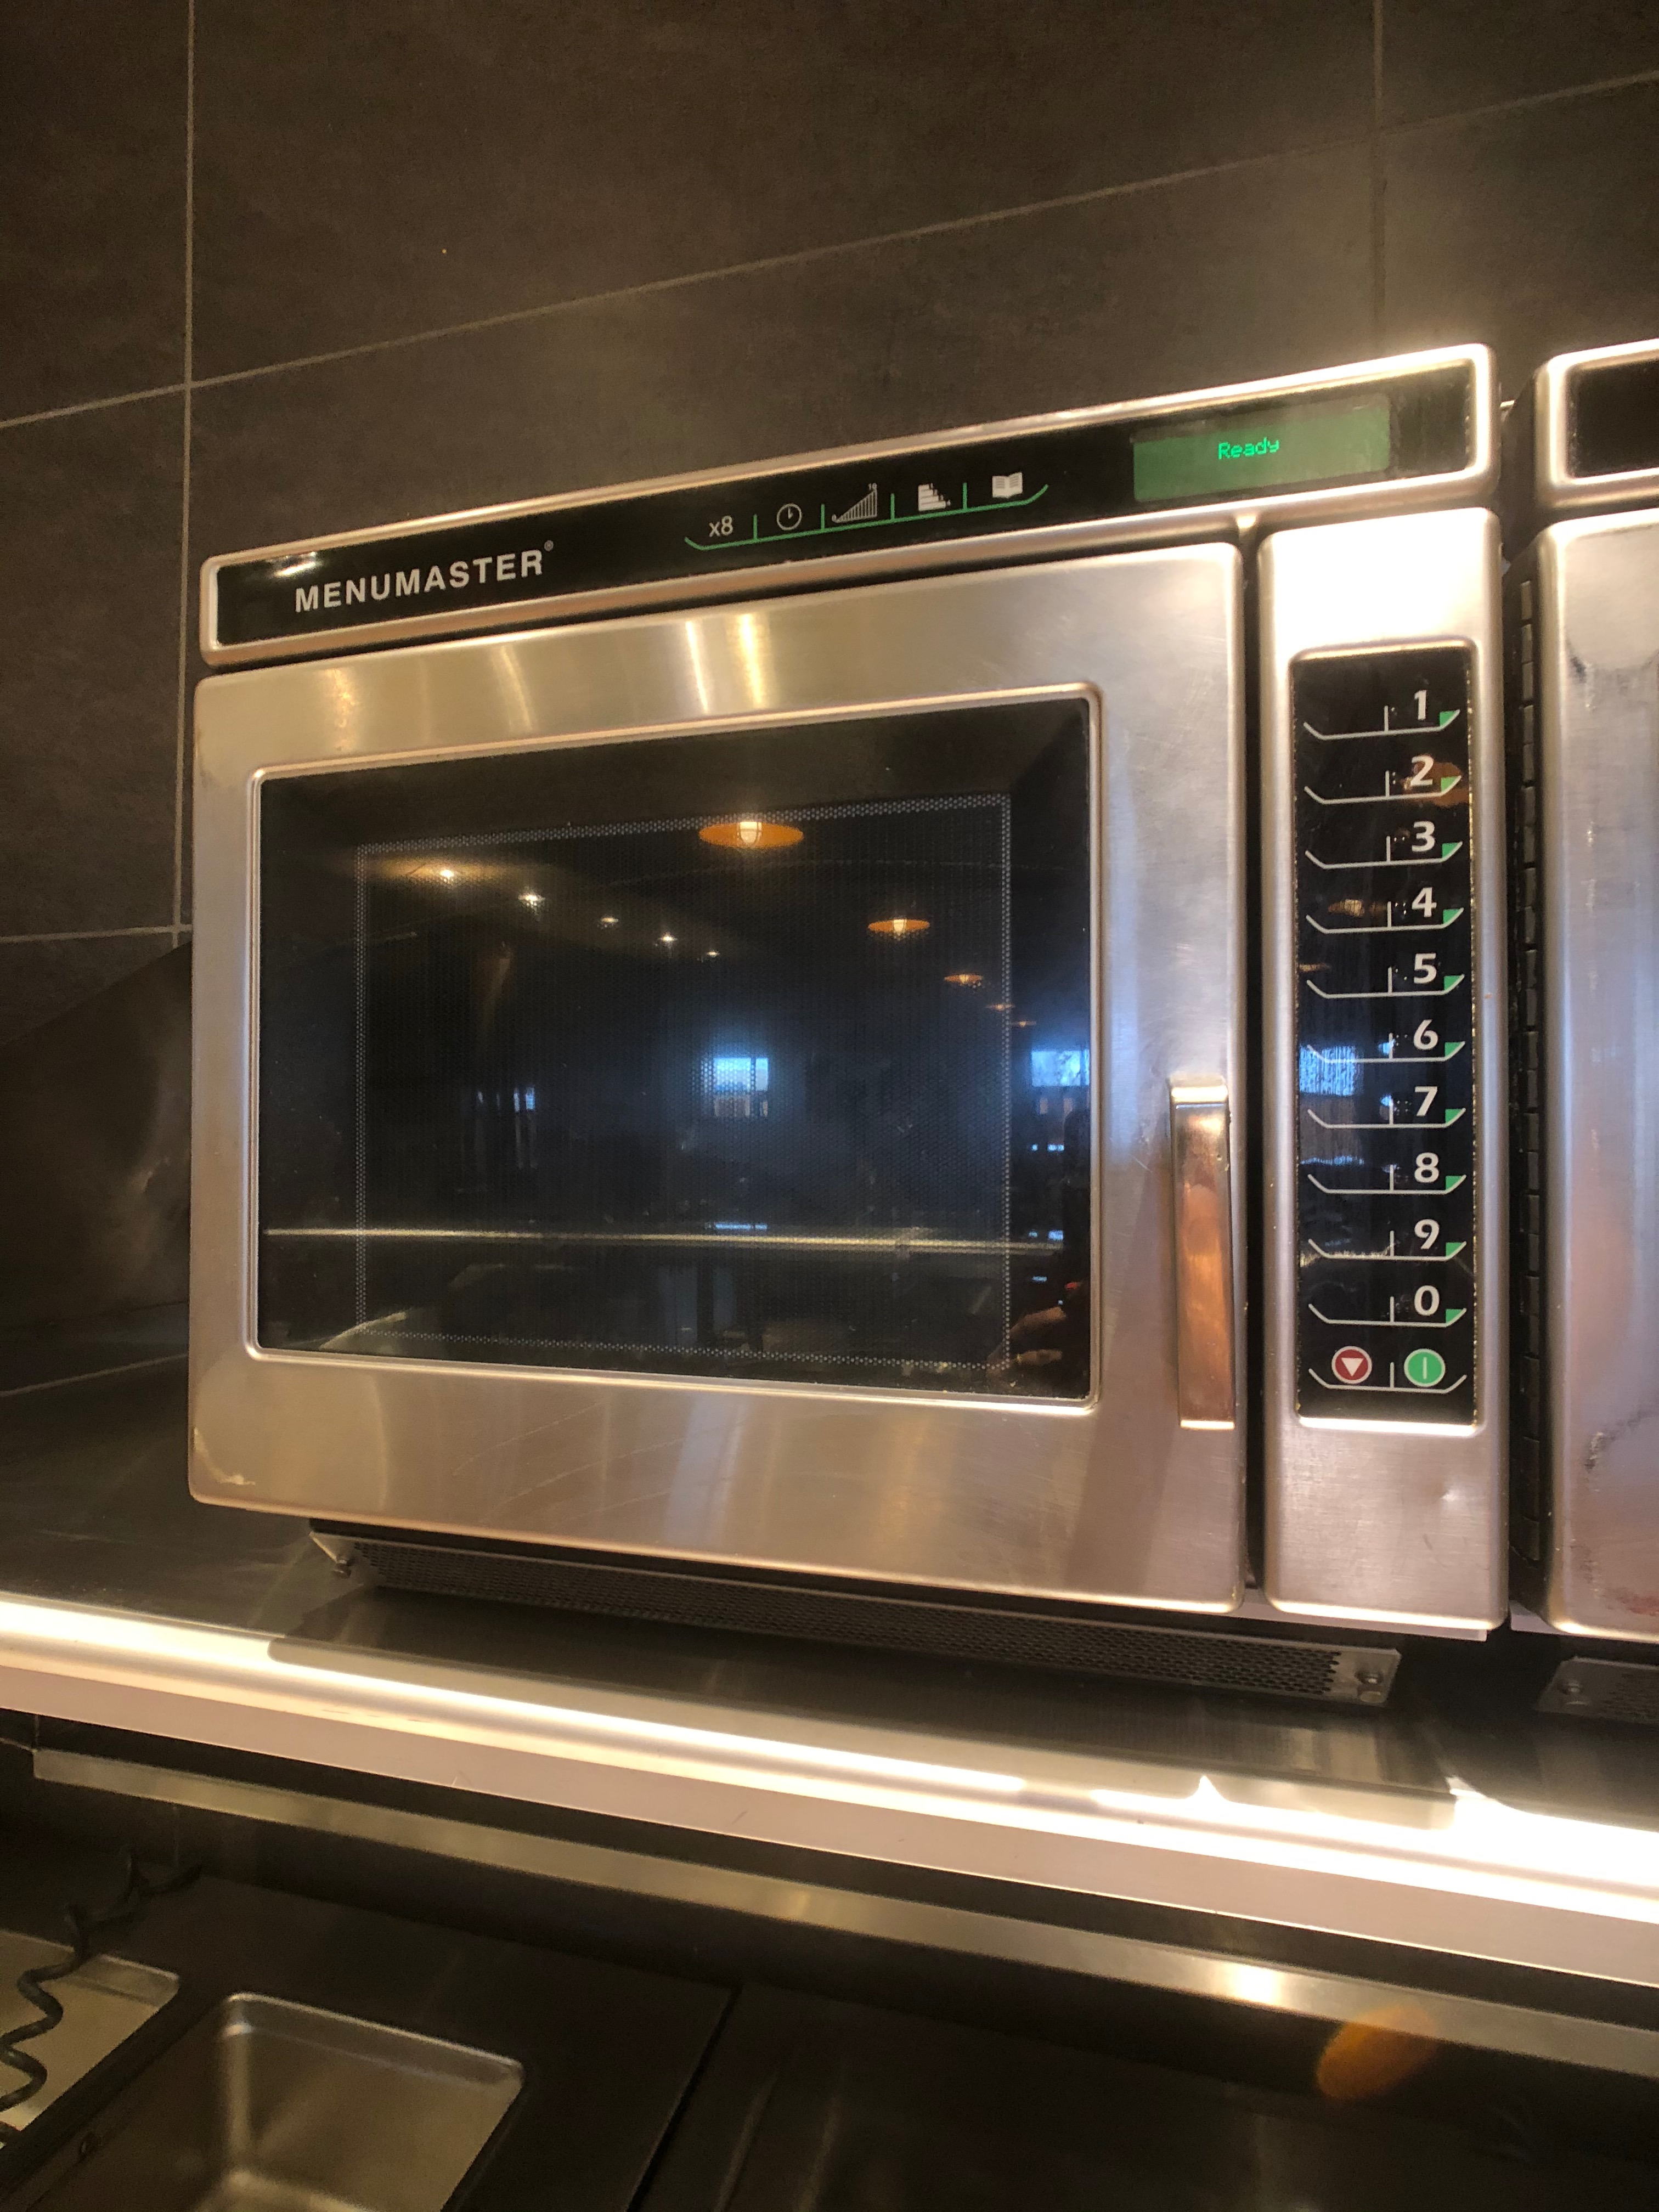 Menumaster Commercial Microwave, Model MRC22S2, 1 CuFt Interior Space, 2200 Power Output - Image 2 of 5